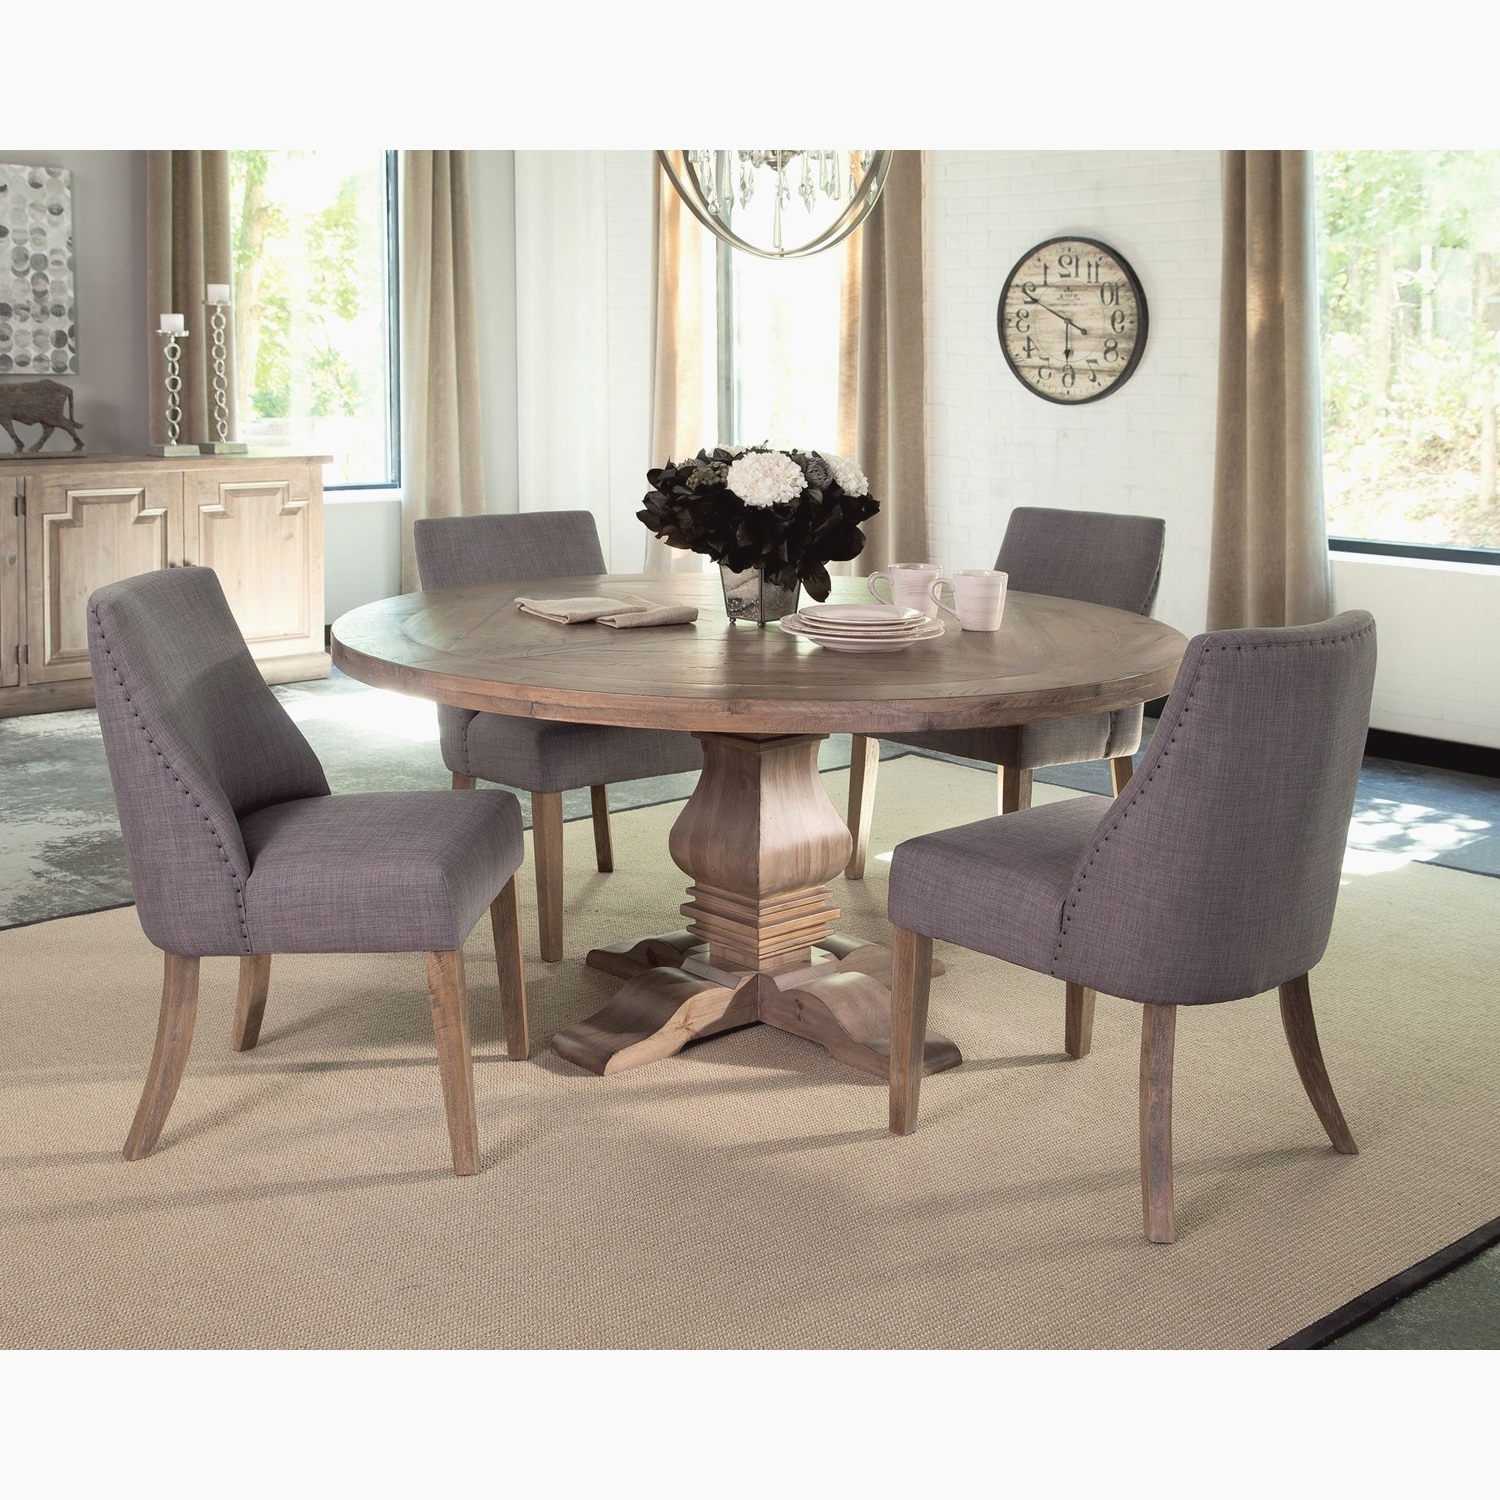 Dining Tables And Purple Chairs Pertaining To 2018 Purple Dining Room Chairs Awesome Florence Pine Round Dining Table (Gallery 13 of 25)